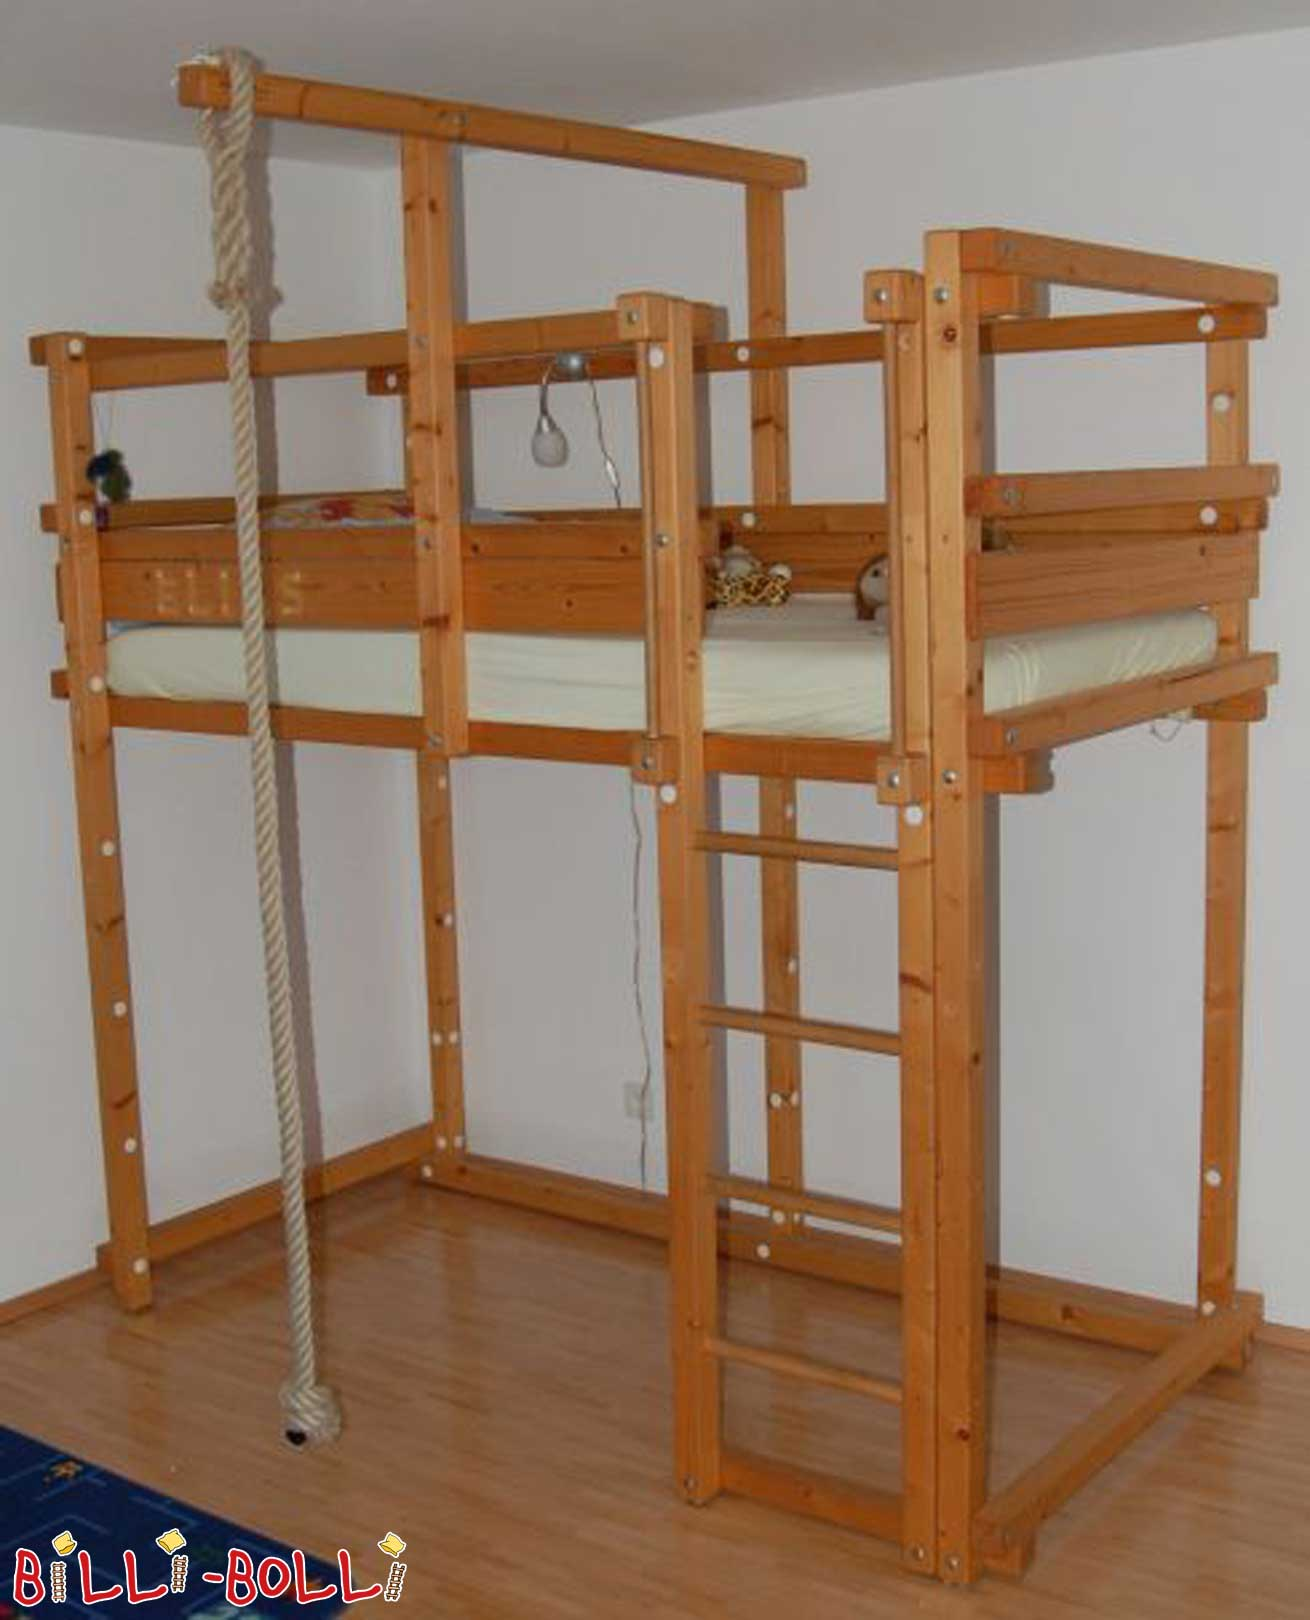 Secondhand page 101 billi bolli kids furniture for Second hand bunk beds